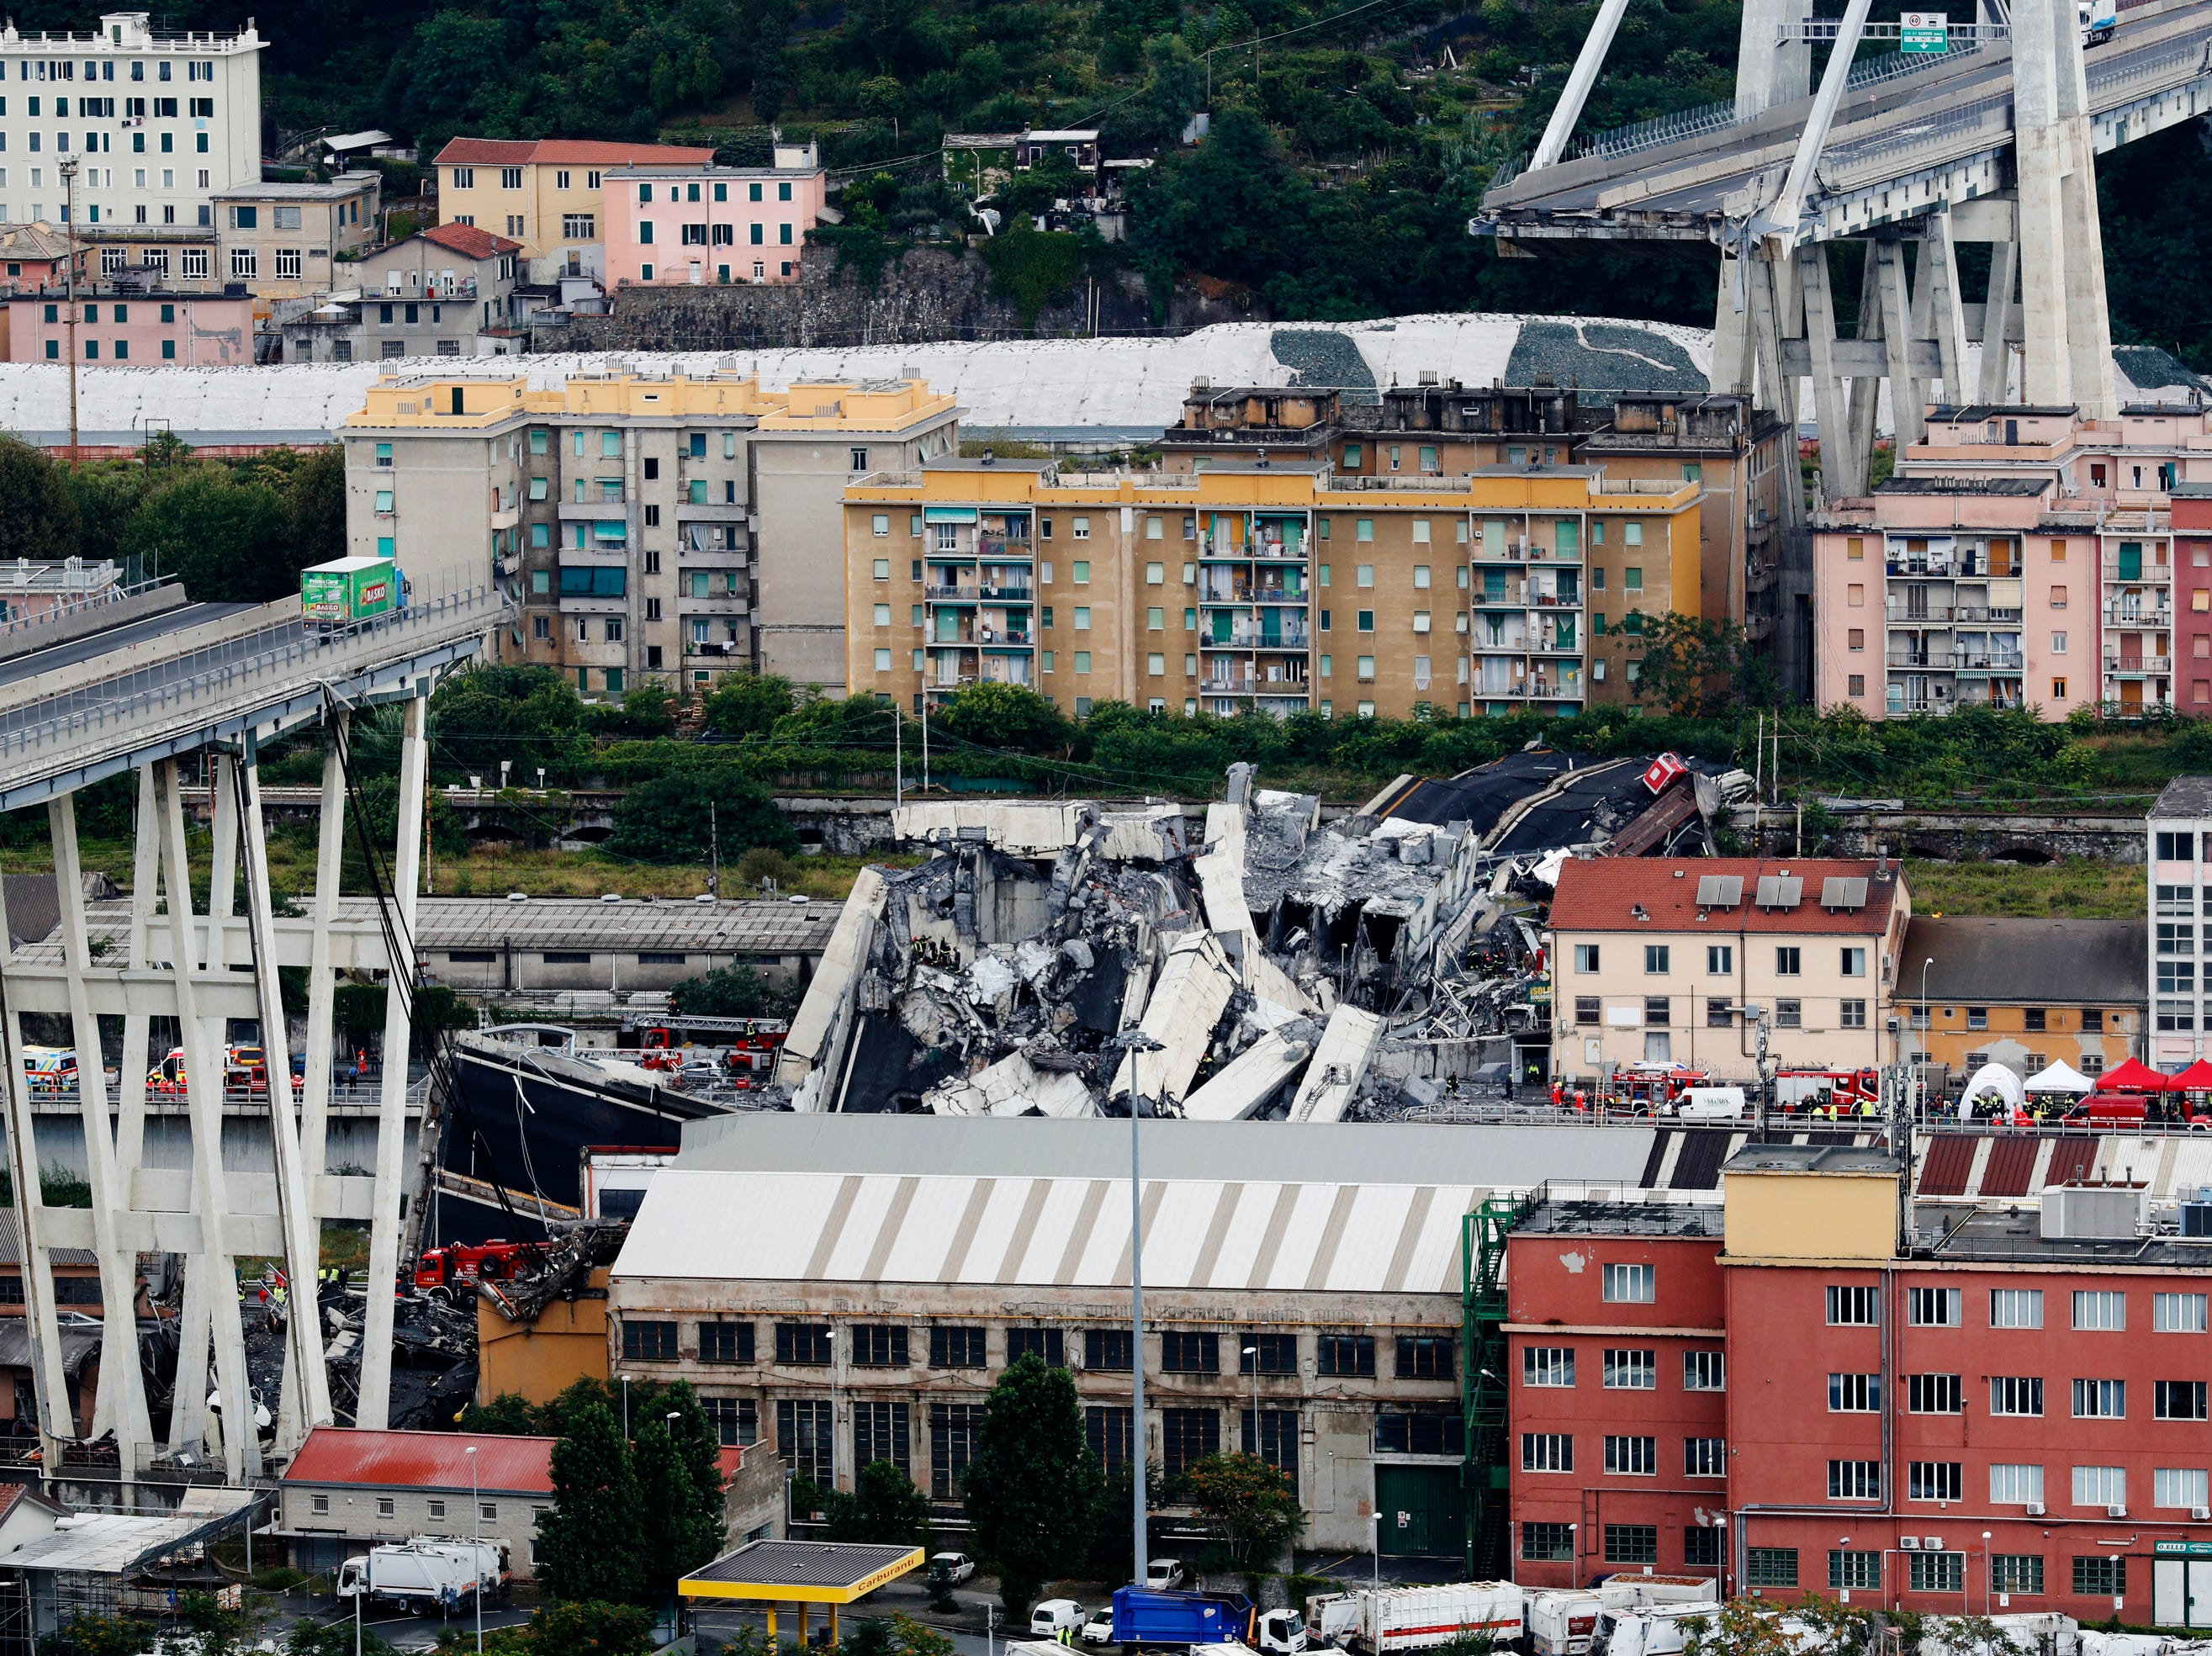 Cars are blocked on the Morandi highway bridge after a large section of it collapsed in Genoa, Italy, on Aug. 14, 2018, during a sudden and violent storm.